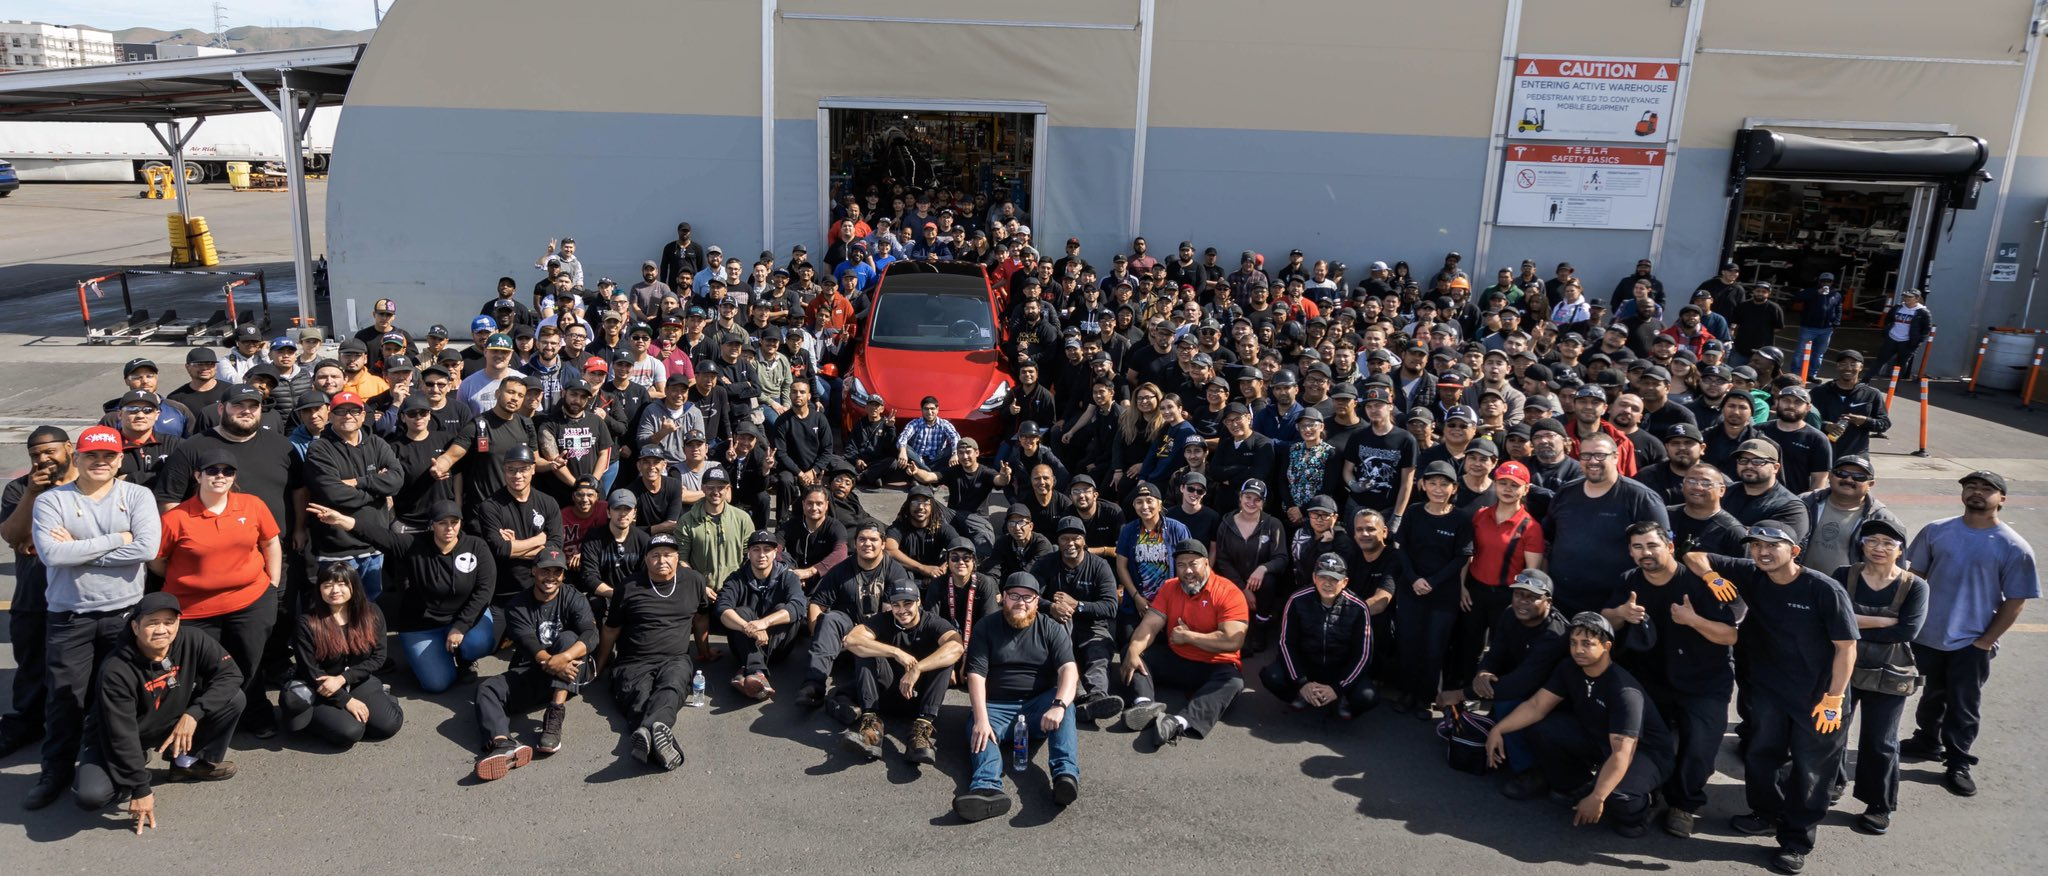 Tesla Crosses Production Milestone of One Million Cars